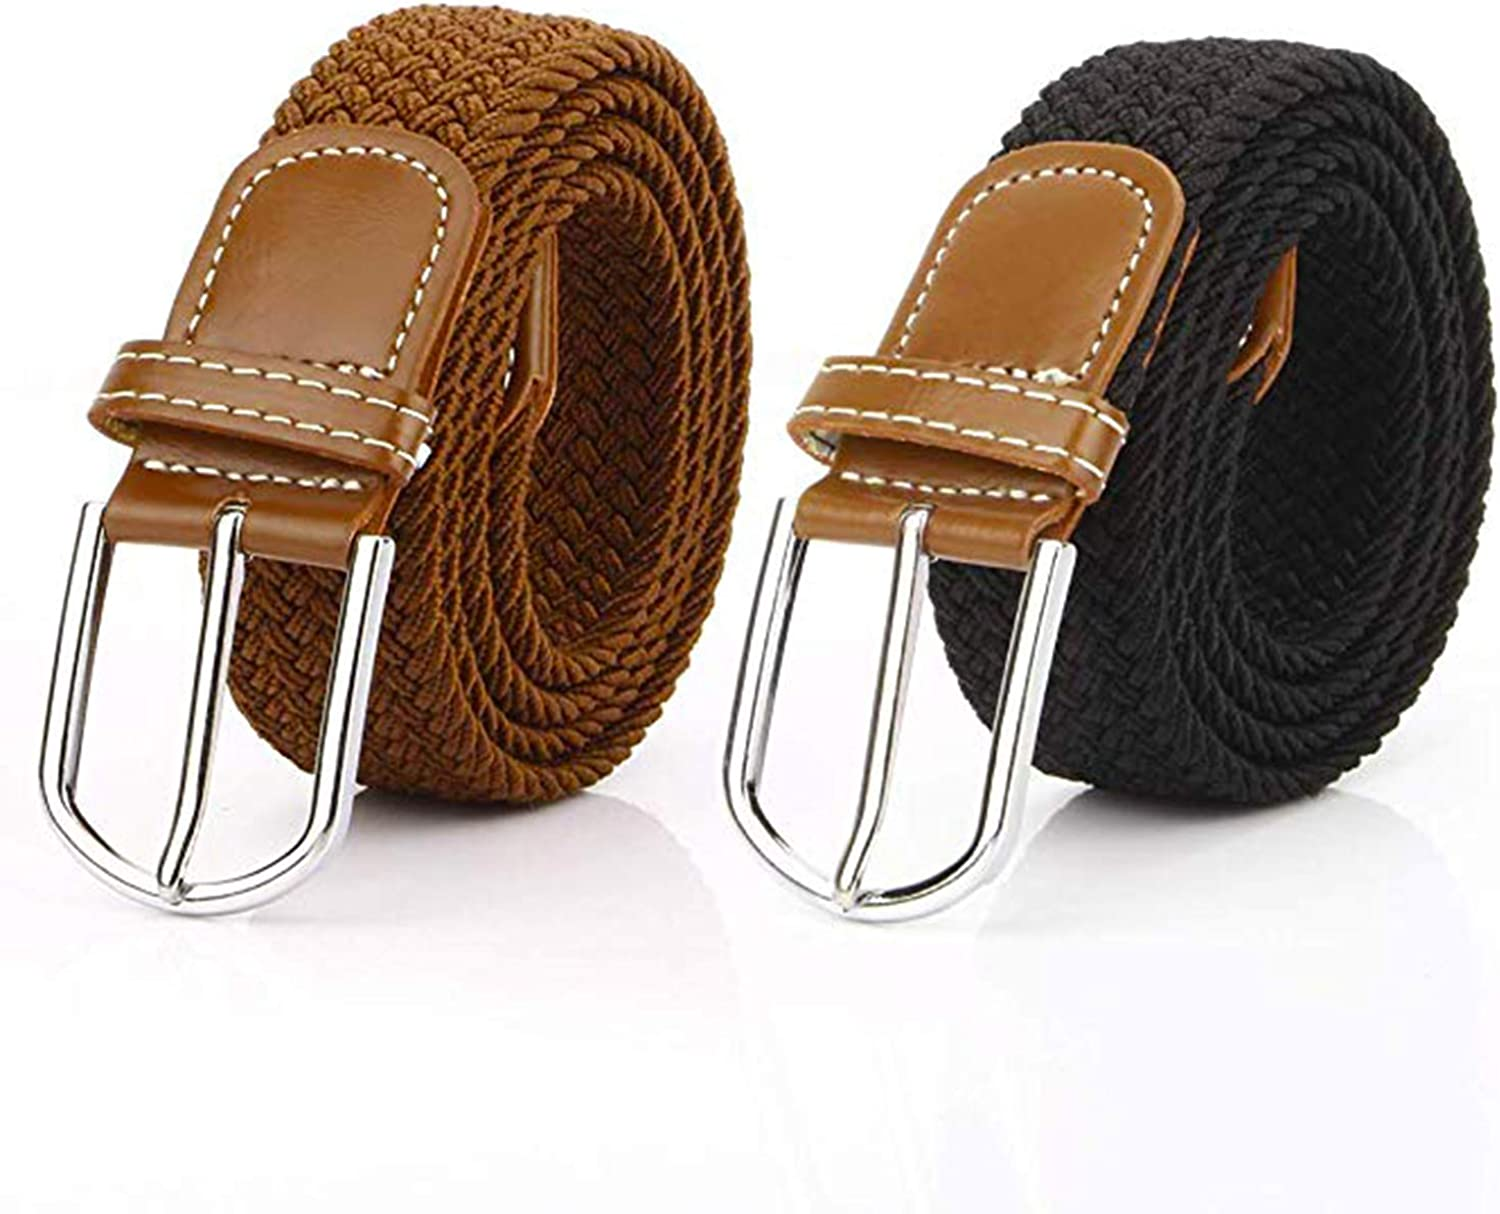 TianSe Women Elastic Fabric Woven Stretch Braided Casual Canvas Belt for Jeans Pants 2 PACK